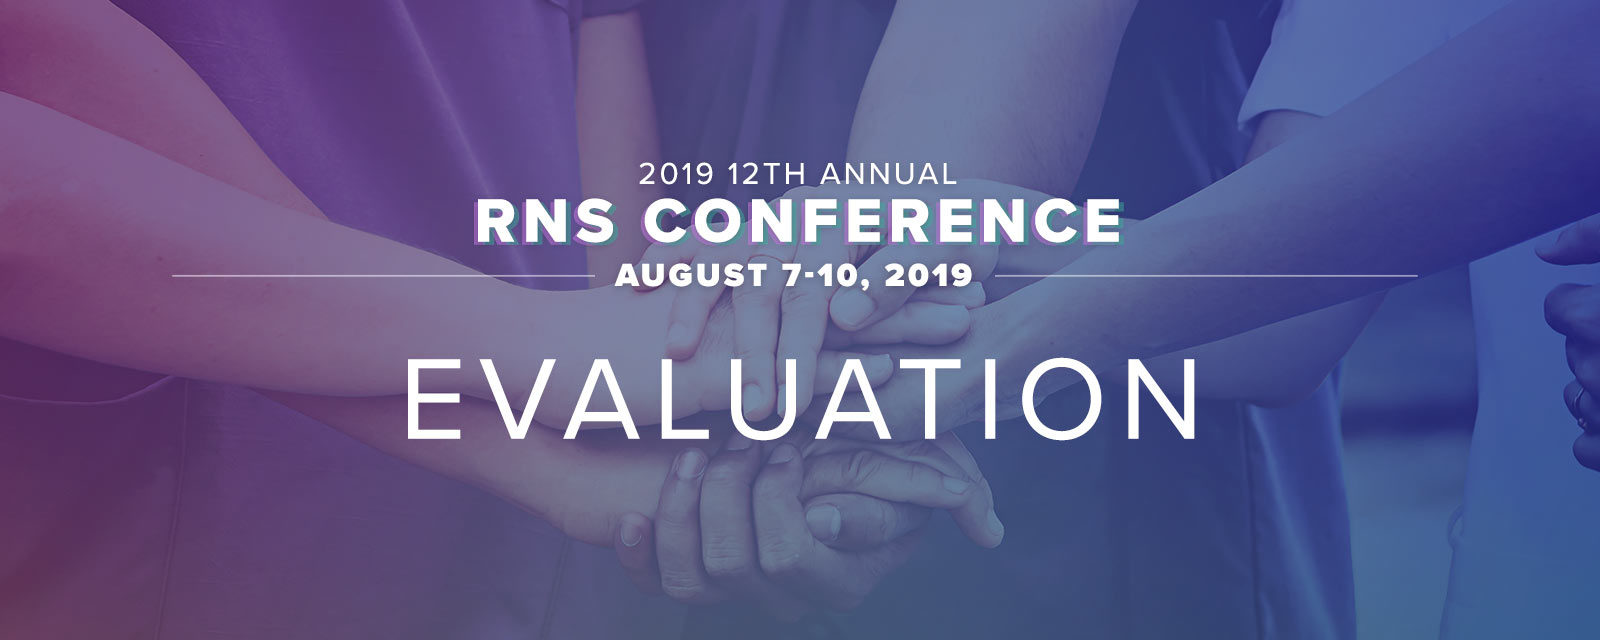 Evaluation: 2019 12th Annual RNS Conference